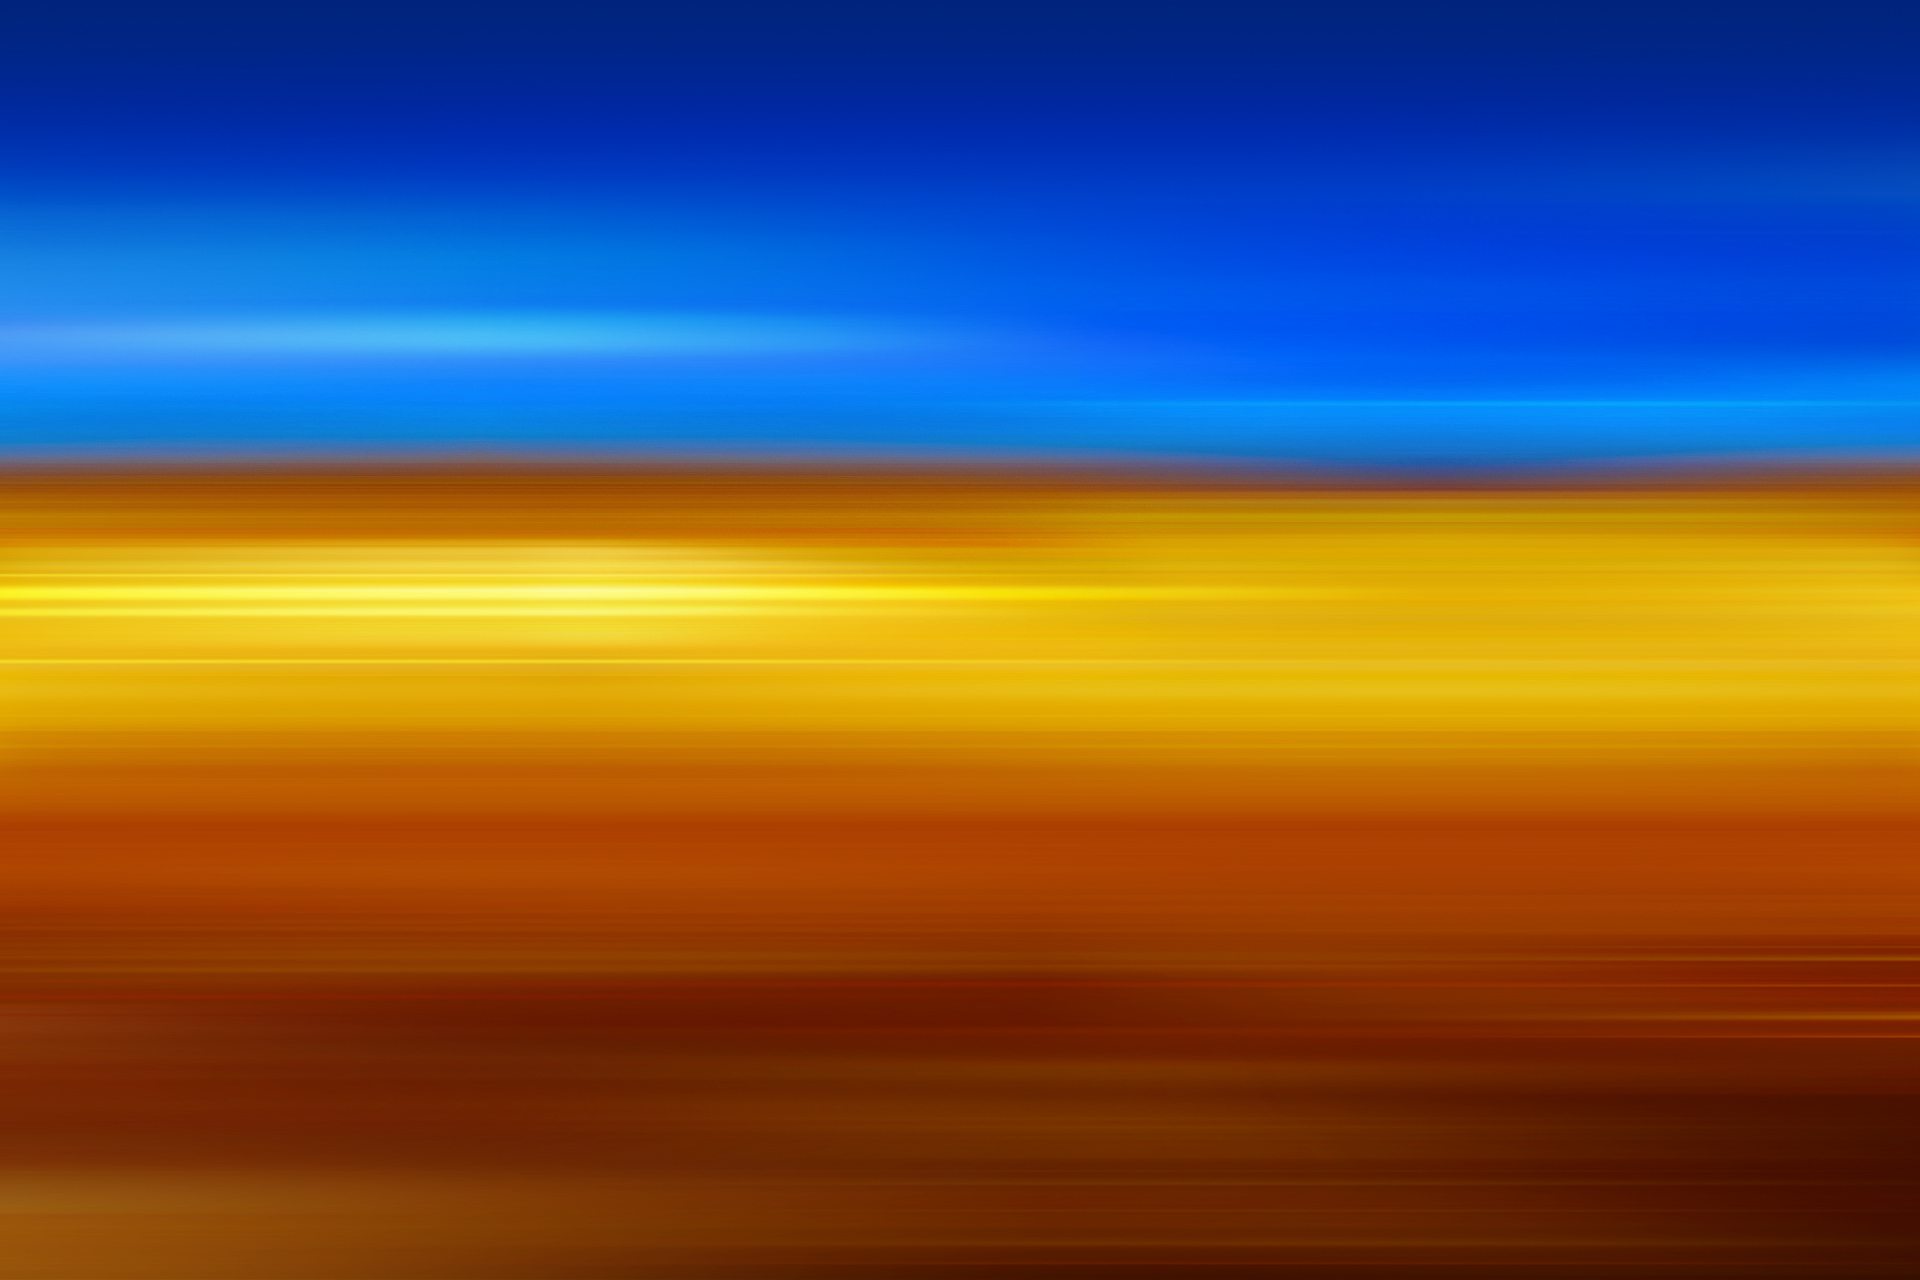 galaxy note 101 stock wallpapers galaxy note user